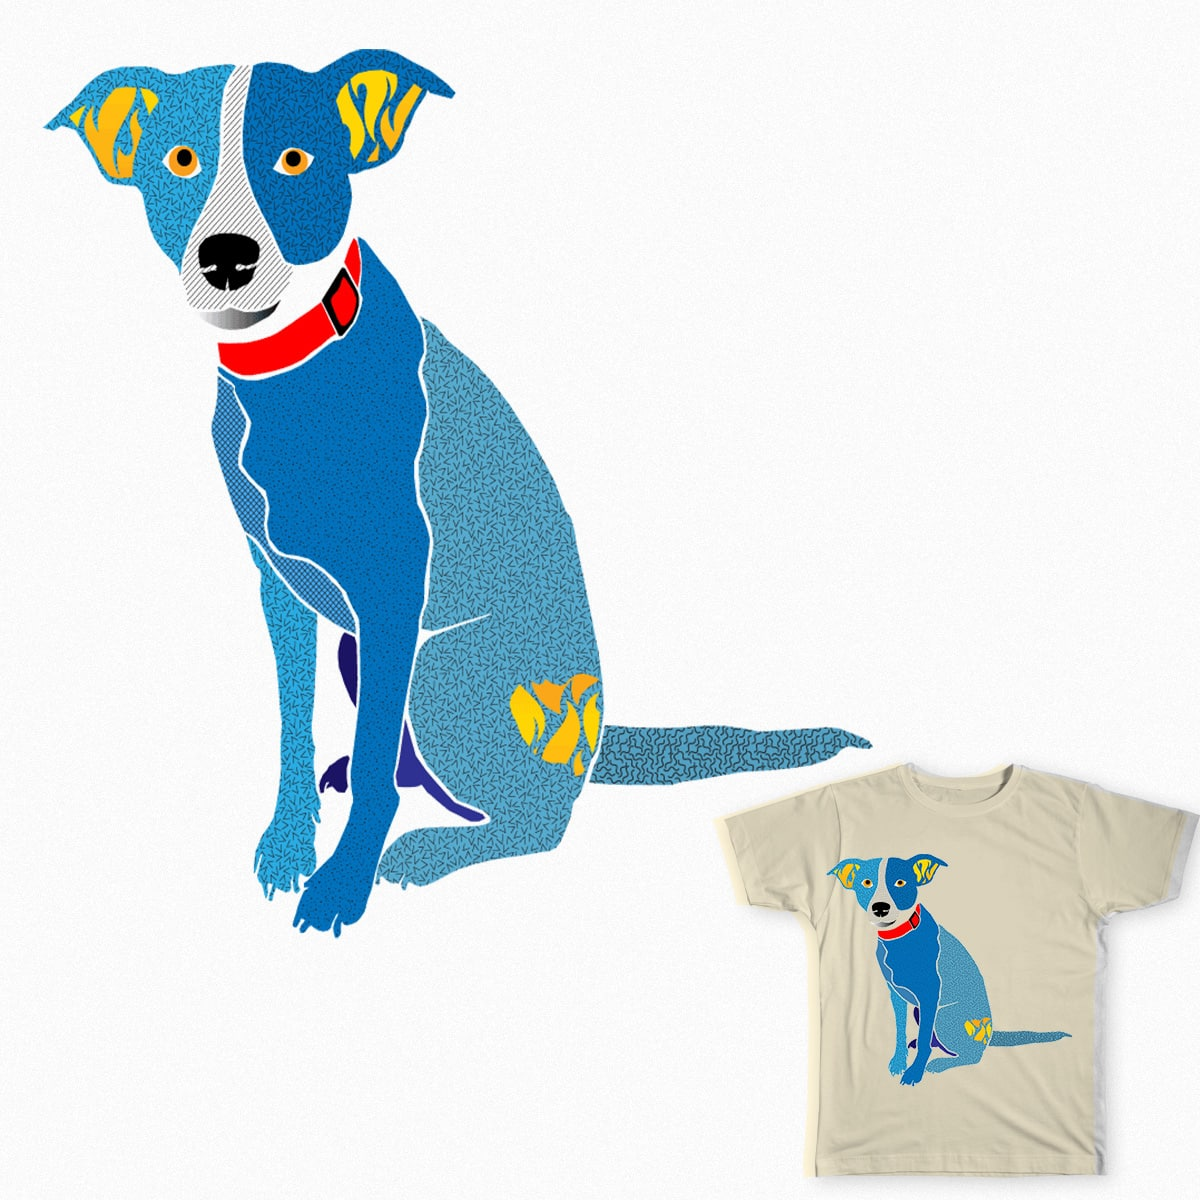 Blue Piper by Kelly.Boyer.Brookshire on Threadless